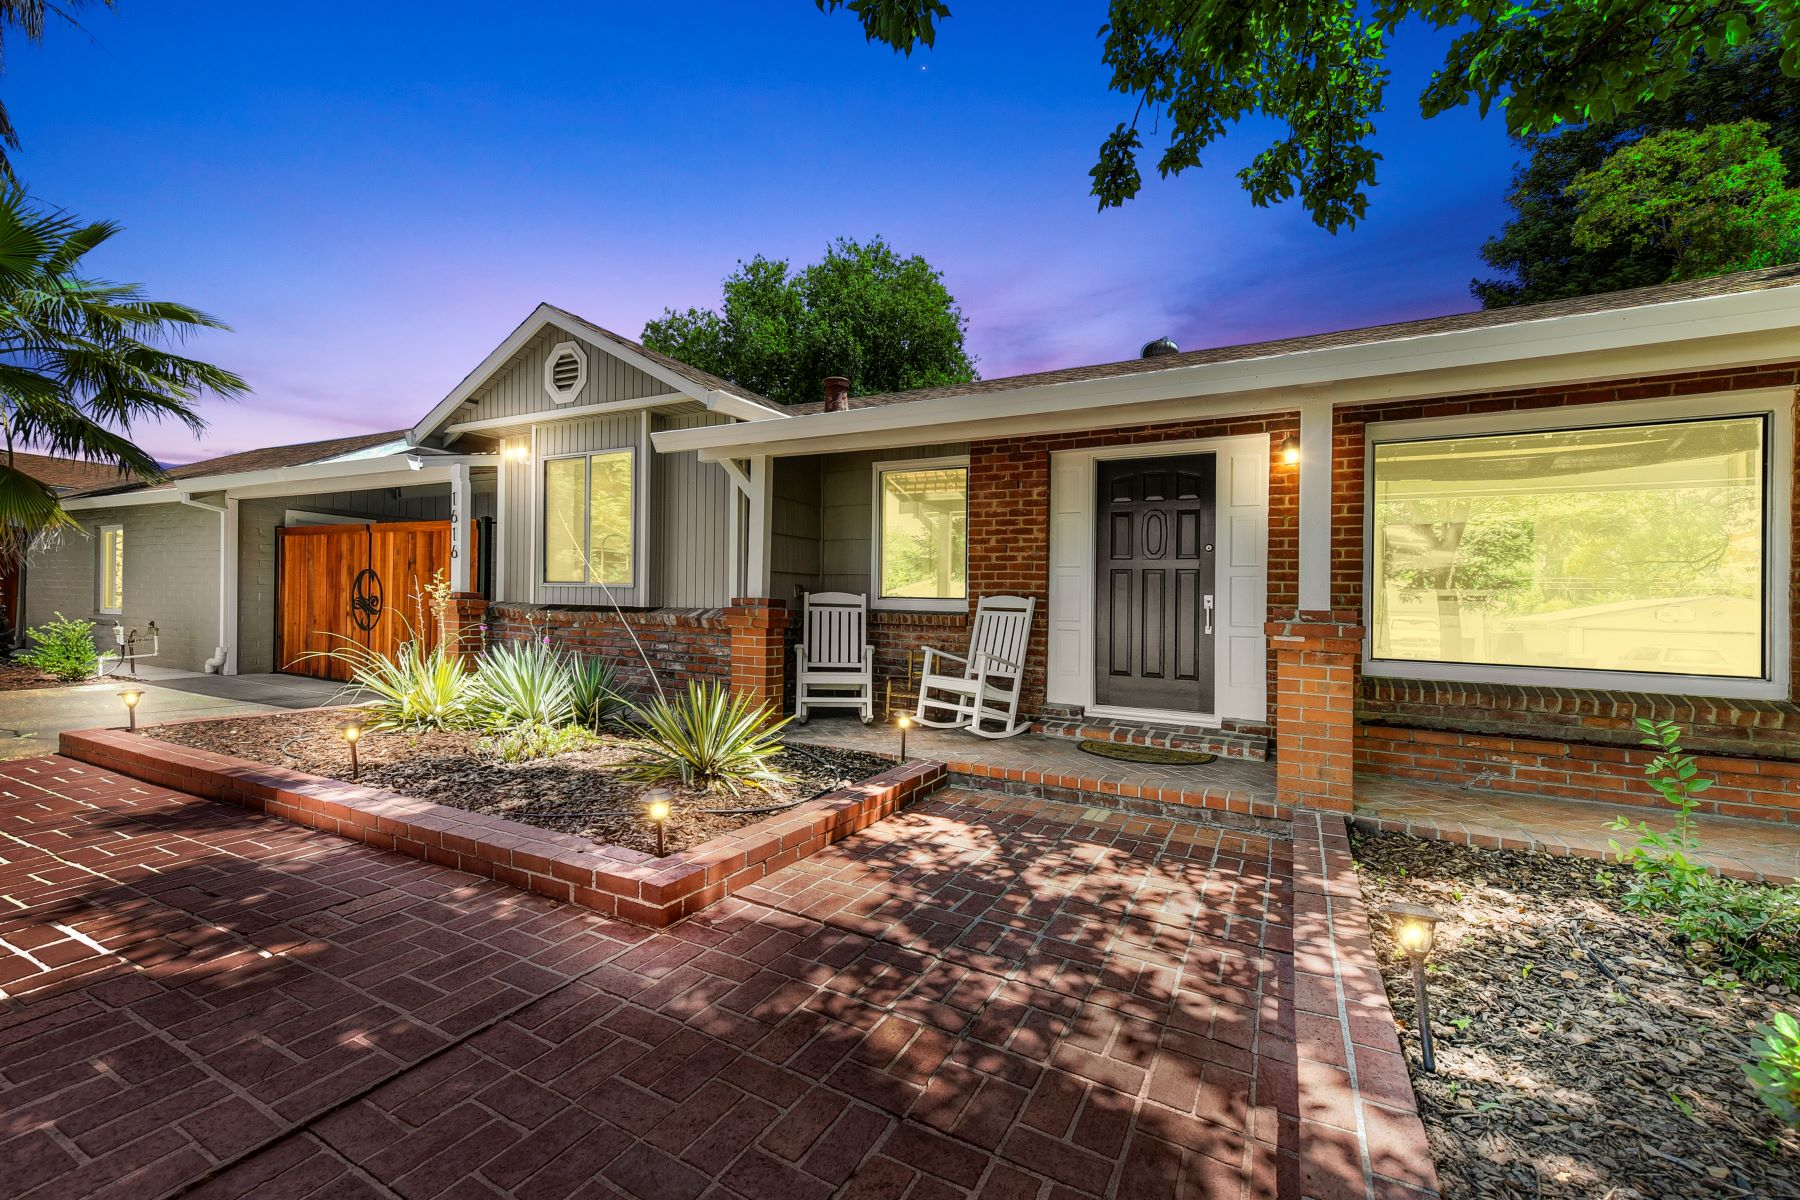 Single Family Homes for Sale at 1616 Mendota Way, Carmichael, CA 95608 1616 Mendota Way Carmichael, California 95608 United States